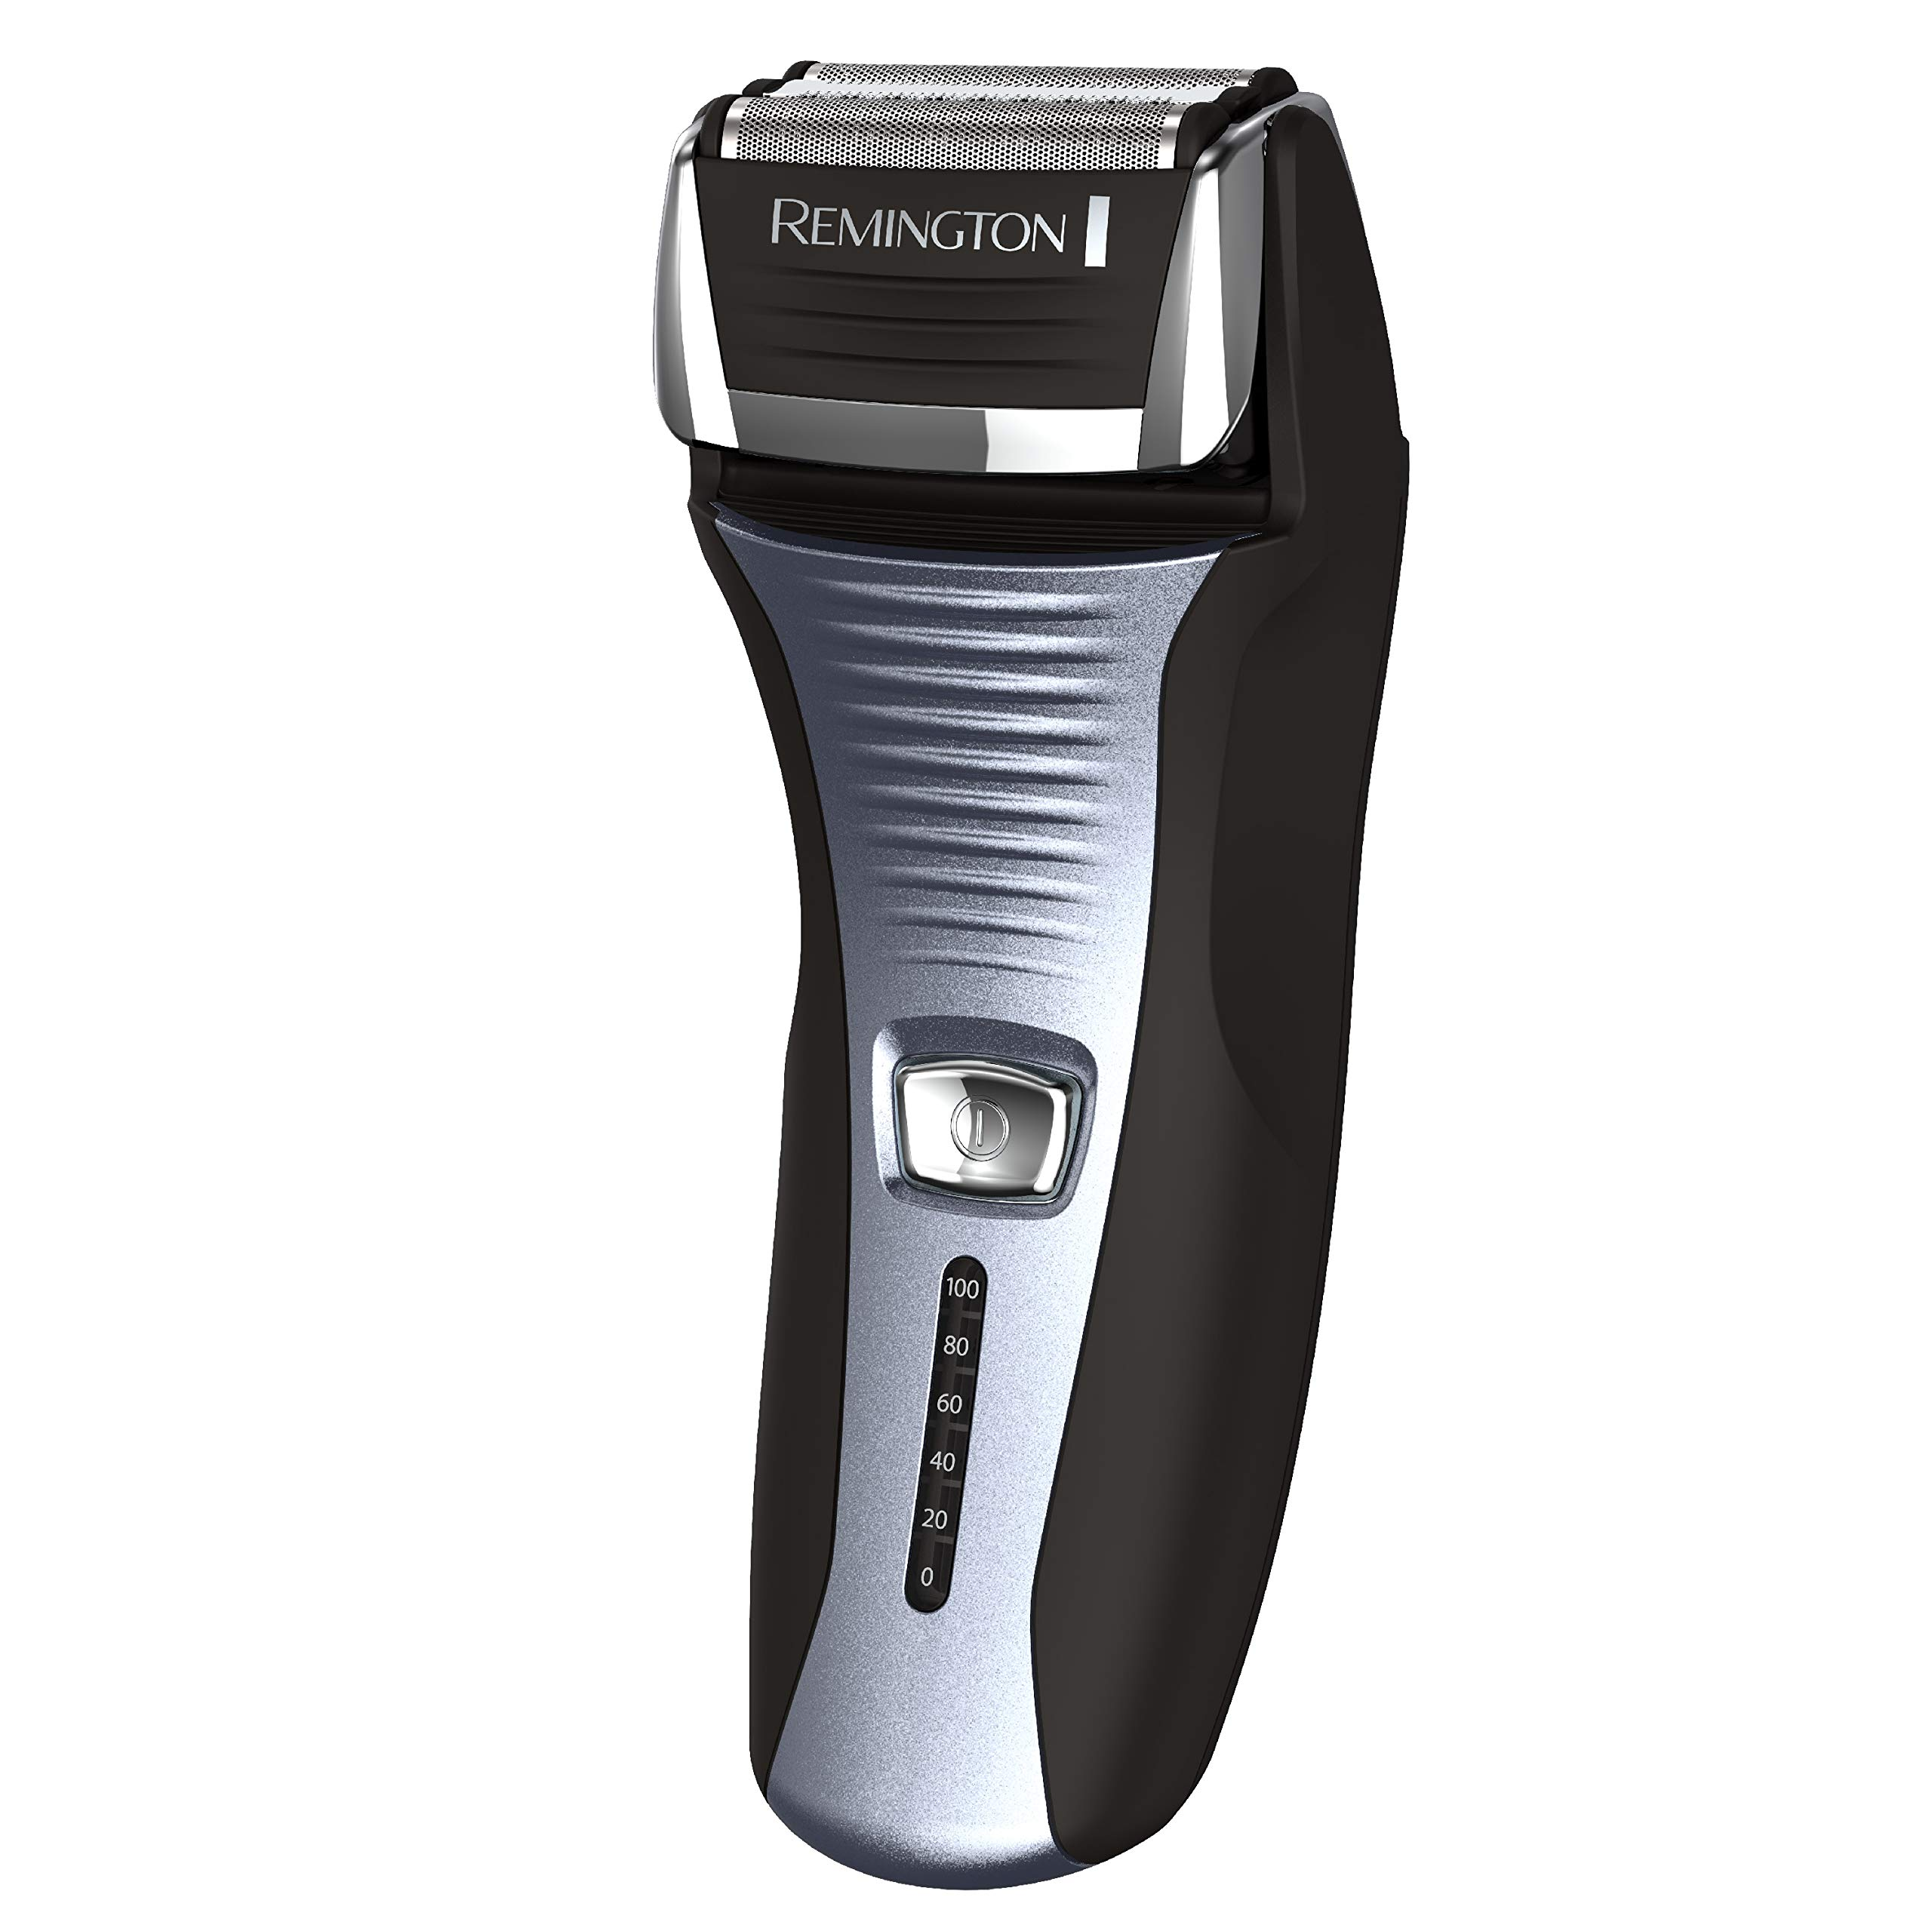 Remington F5-5800 Foil Shaver, Men's Electric Razor, Electric Shaver, Black by Remington (Image #1)